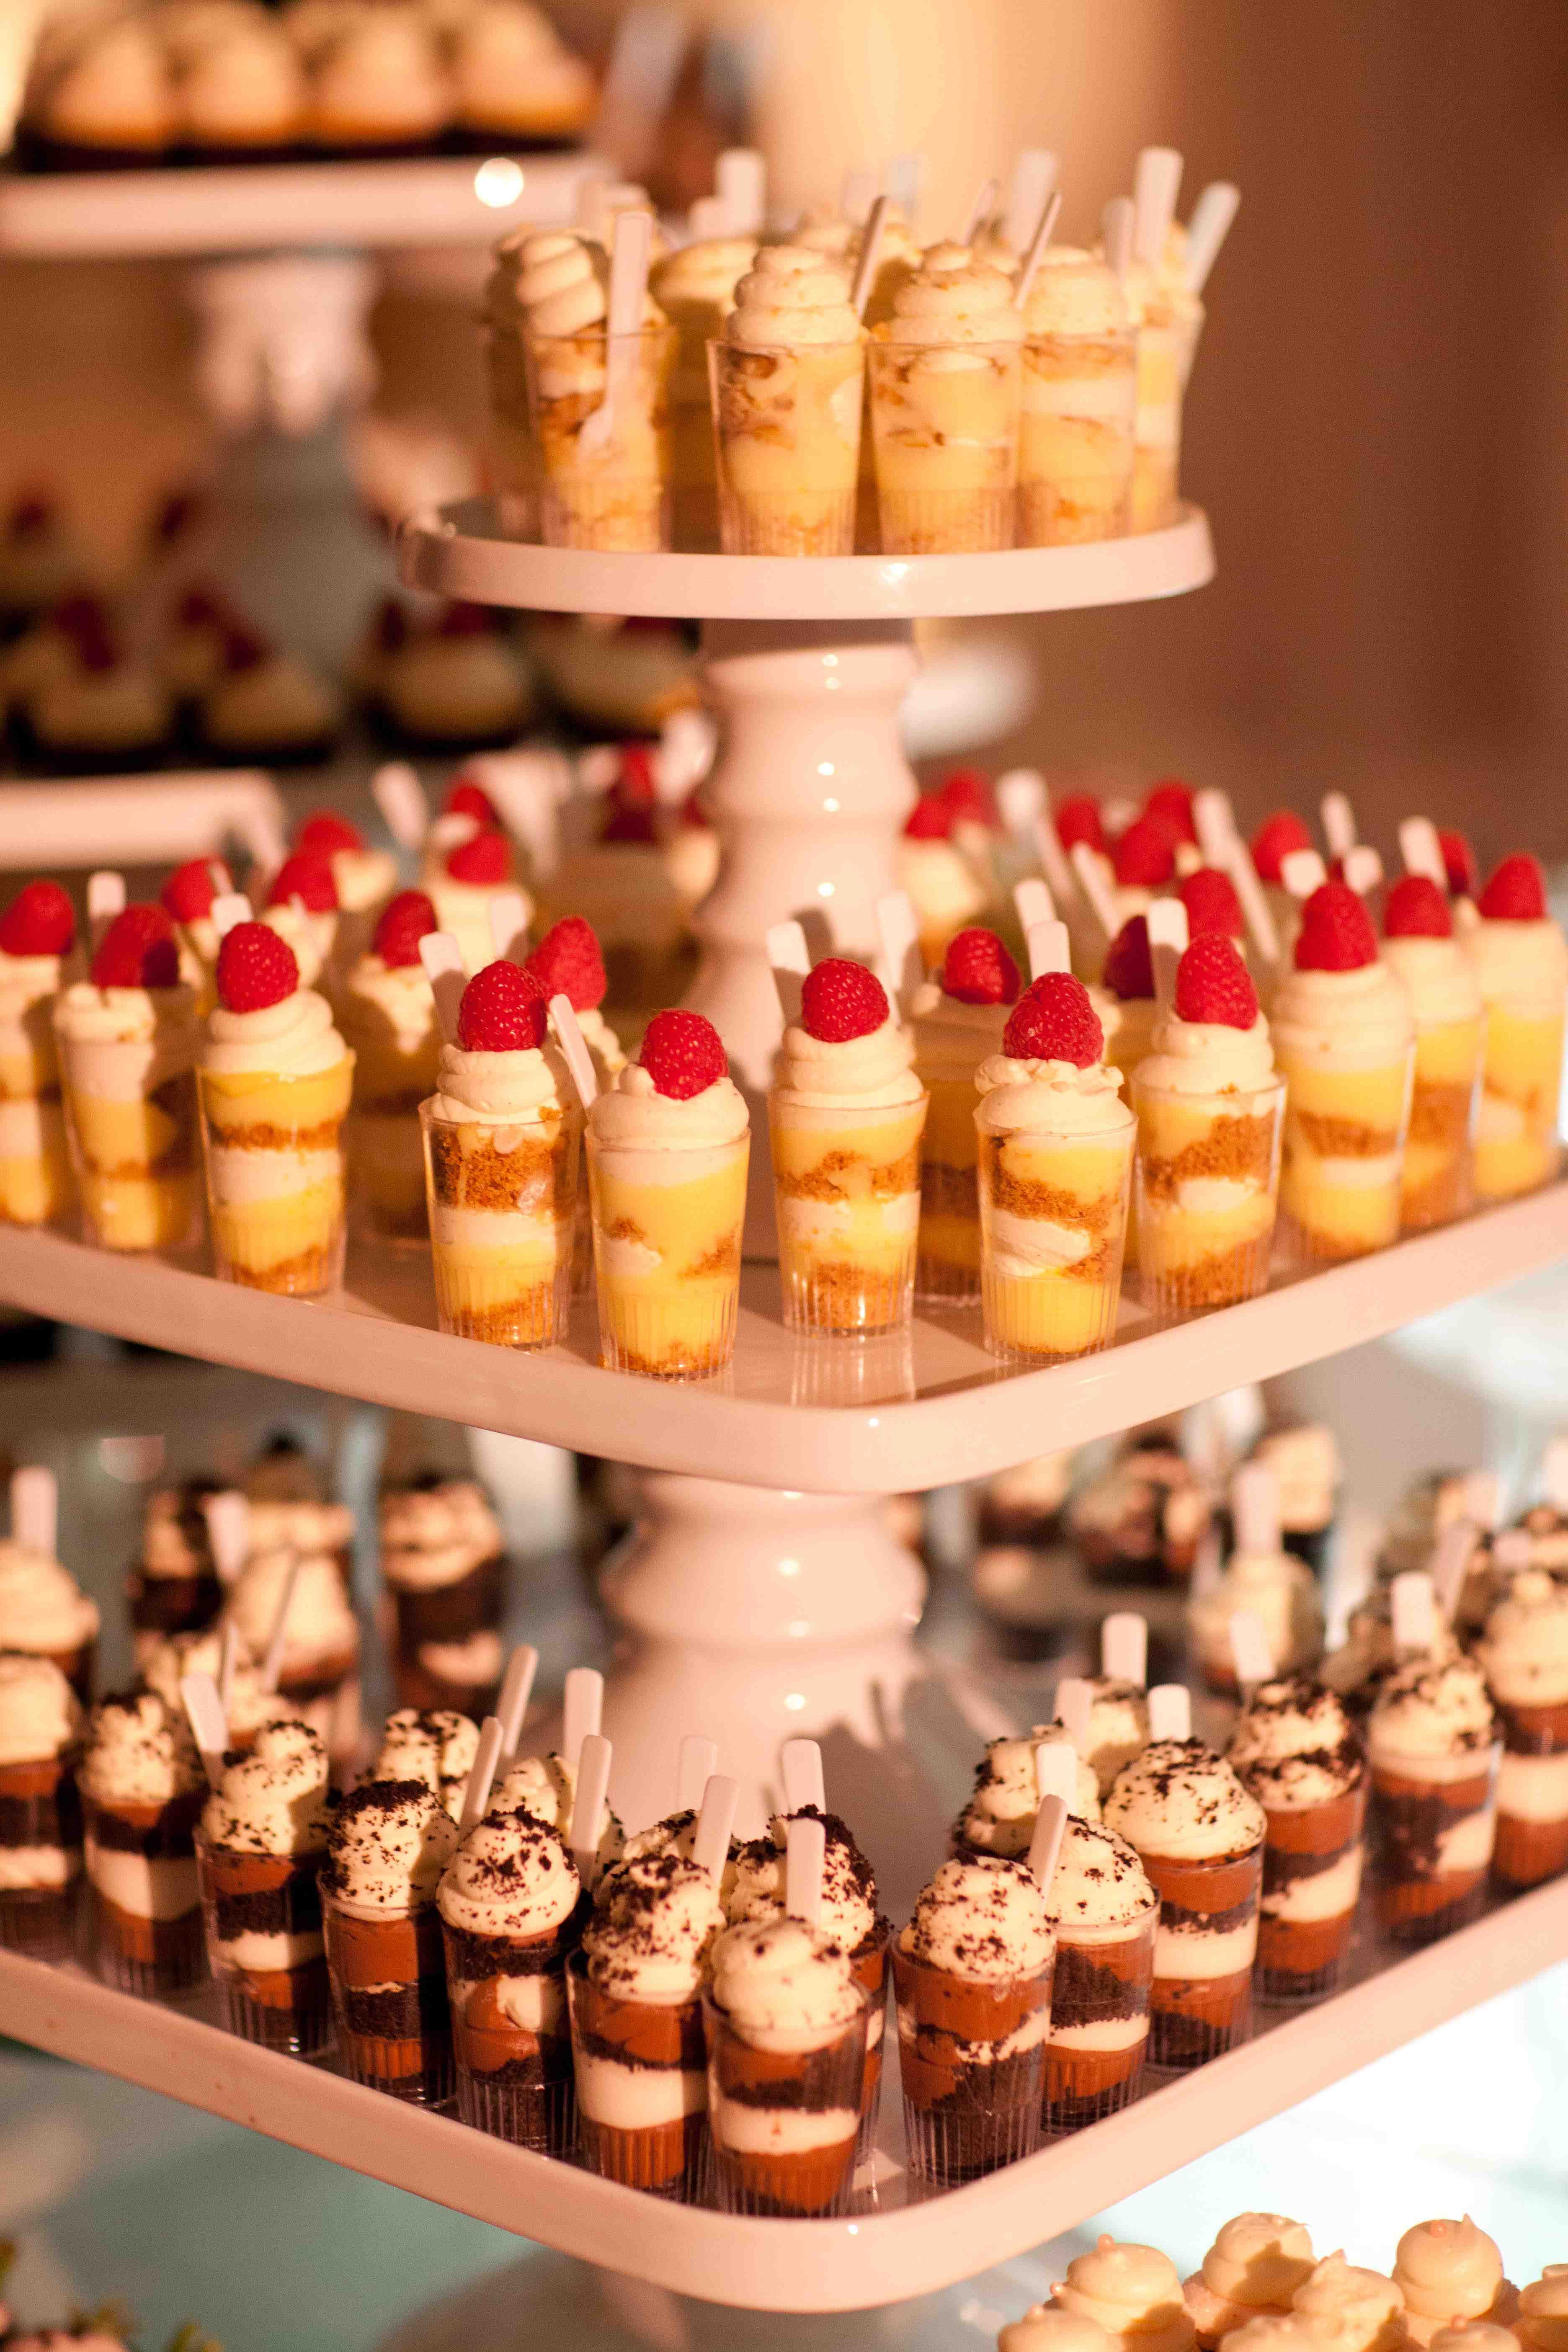 Dessert Table Ideas Show Off Your Confections With A Dessert Tower